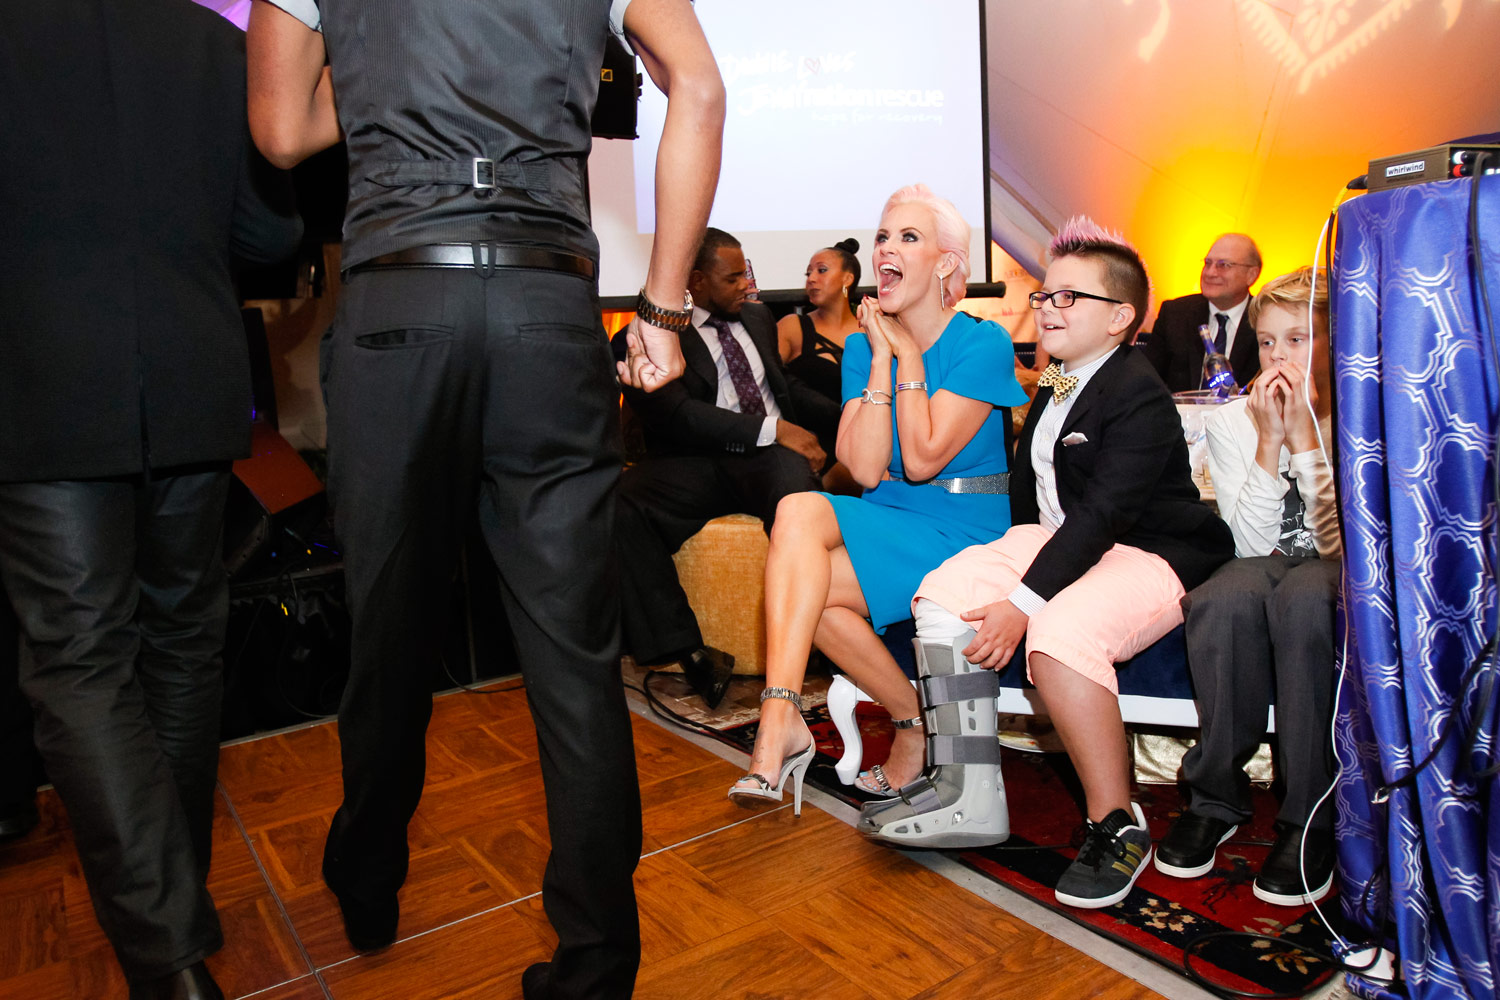 event-photographer-madison-wi-autism-ruthie-hauge-generation-rescue-night-of-hope-oscar-swan-jenny-mccarthy-donnie-wahlberg-28.jpg